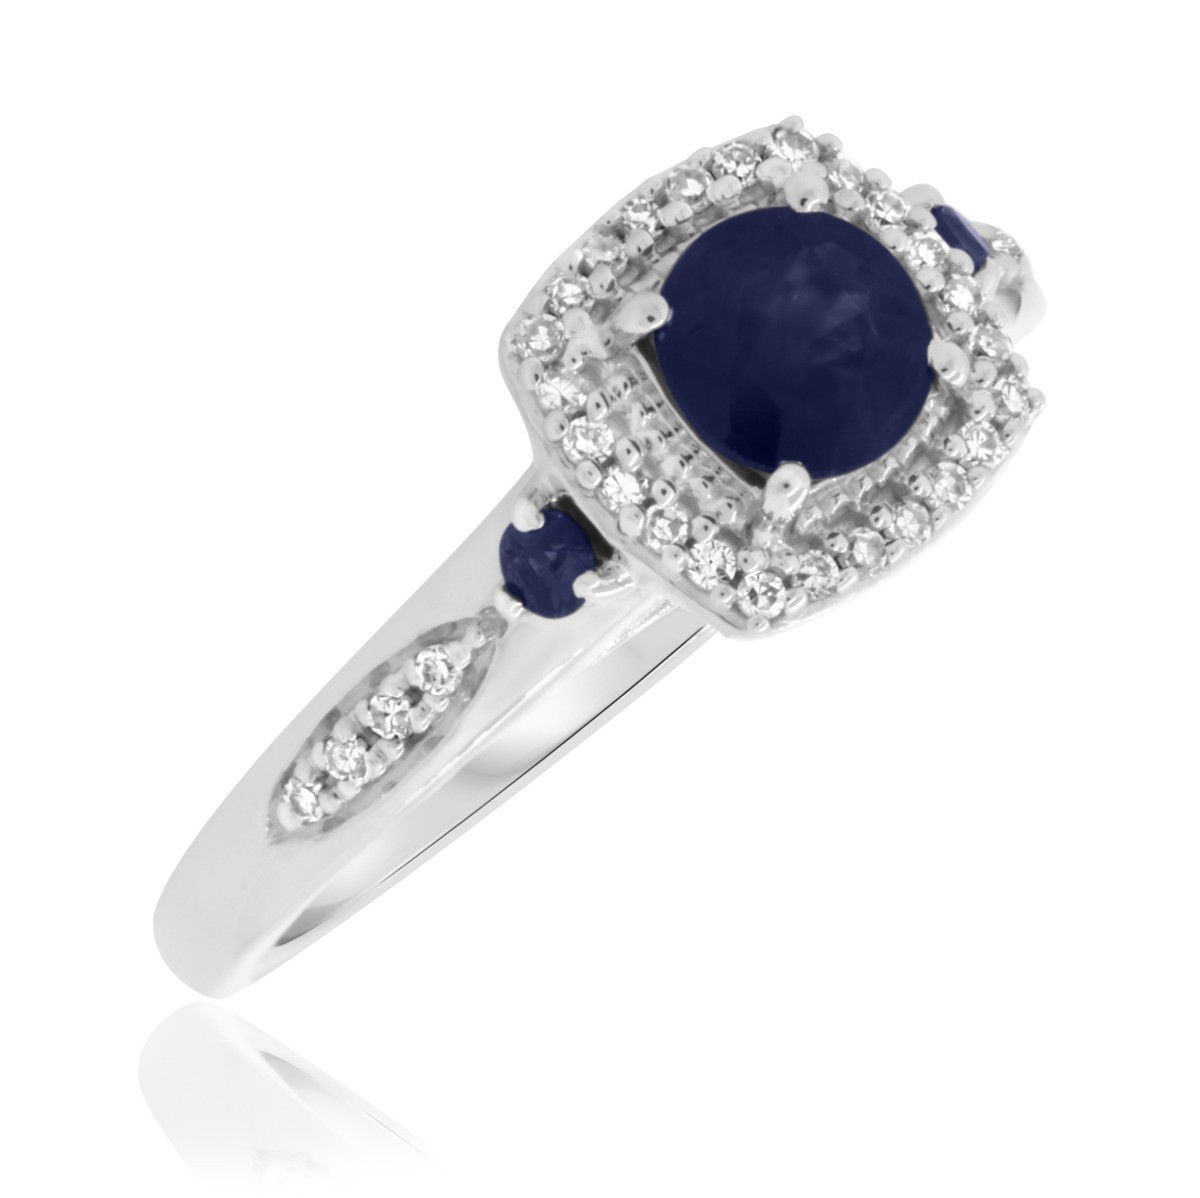 7/8 CT. T.W. Sapphire Engagement Ring 10K White Gold